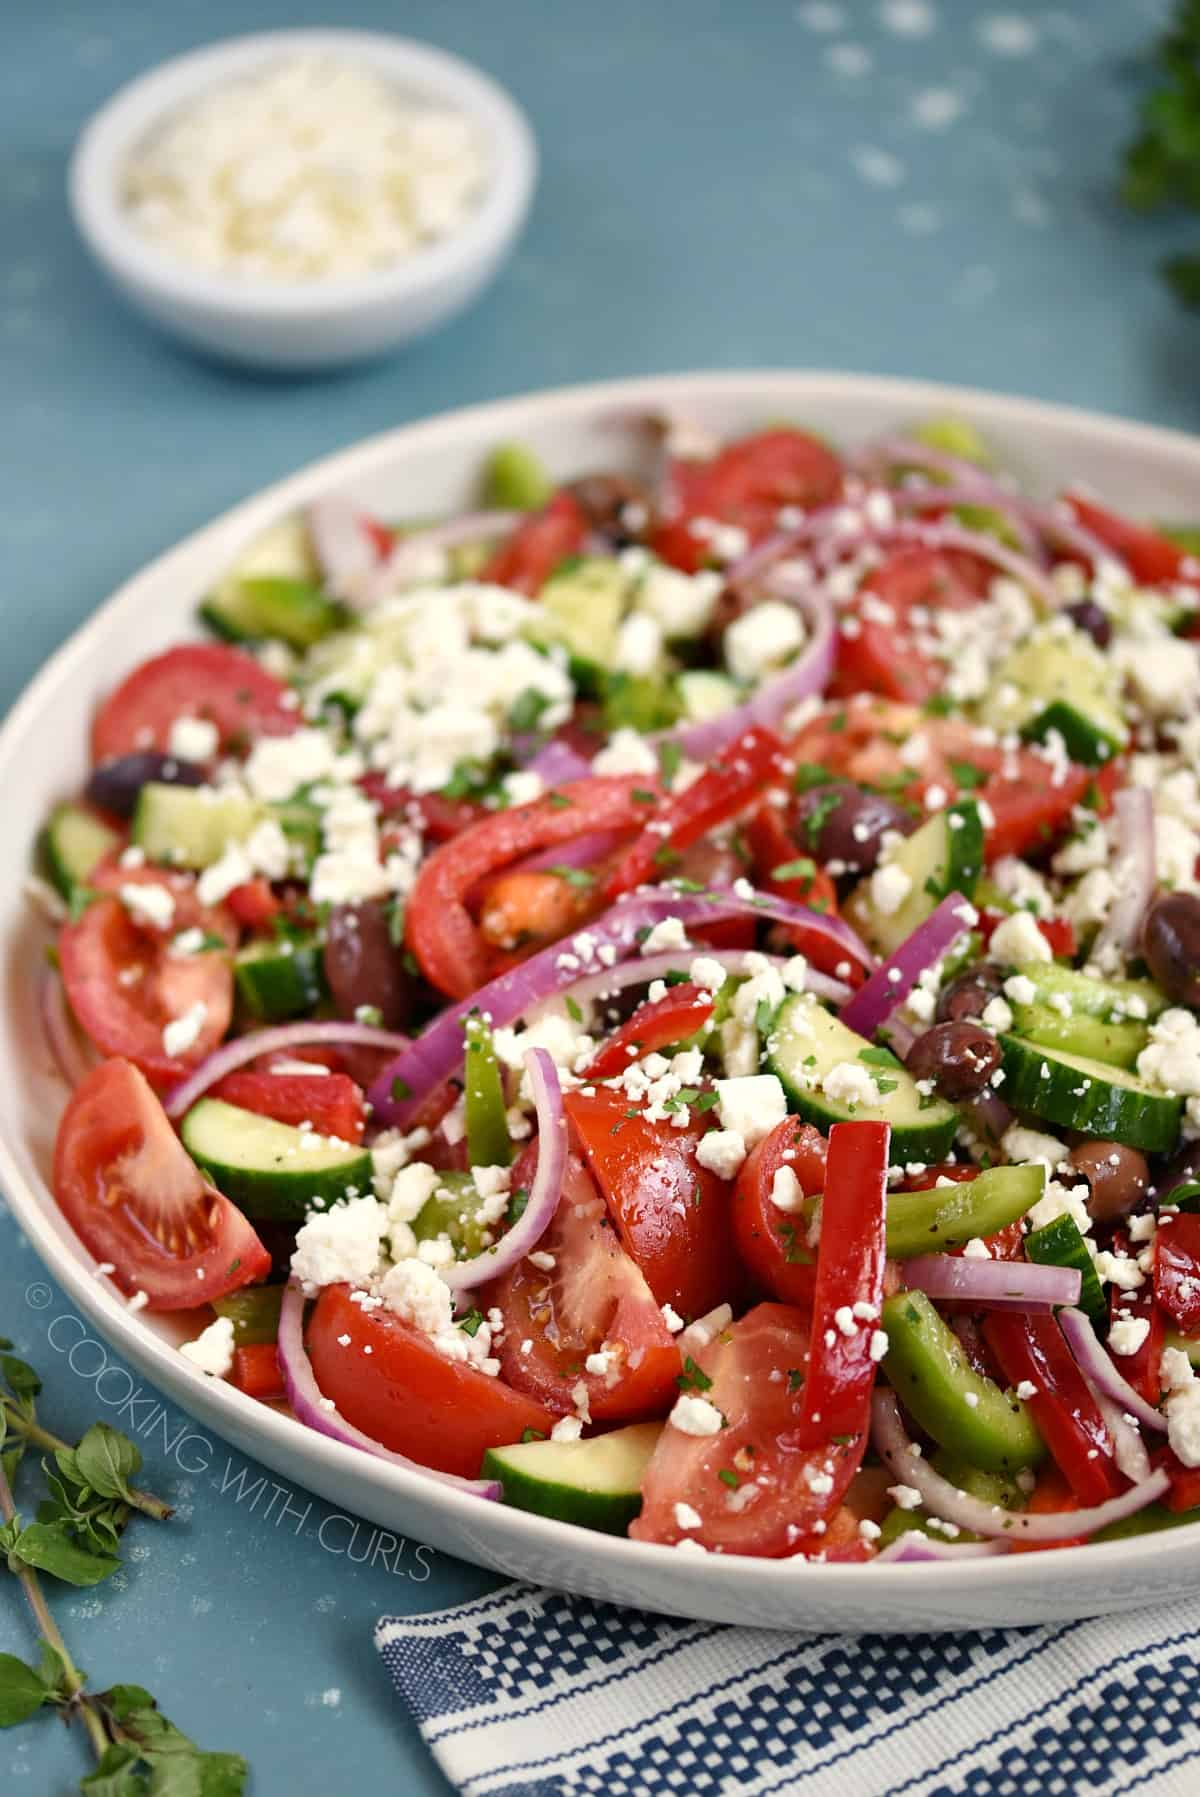 A Big Greek Salad consisting of tomatoes, cucumbers, bell pepper, onions, olives and feta cheese on a white serving platter.